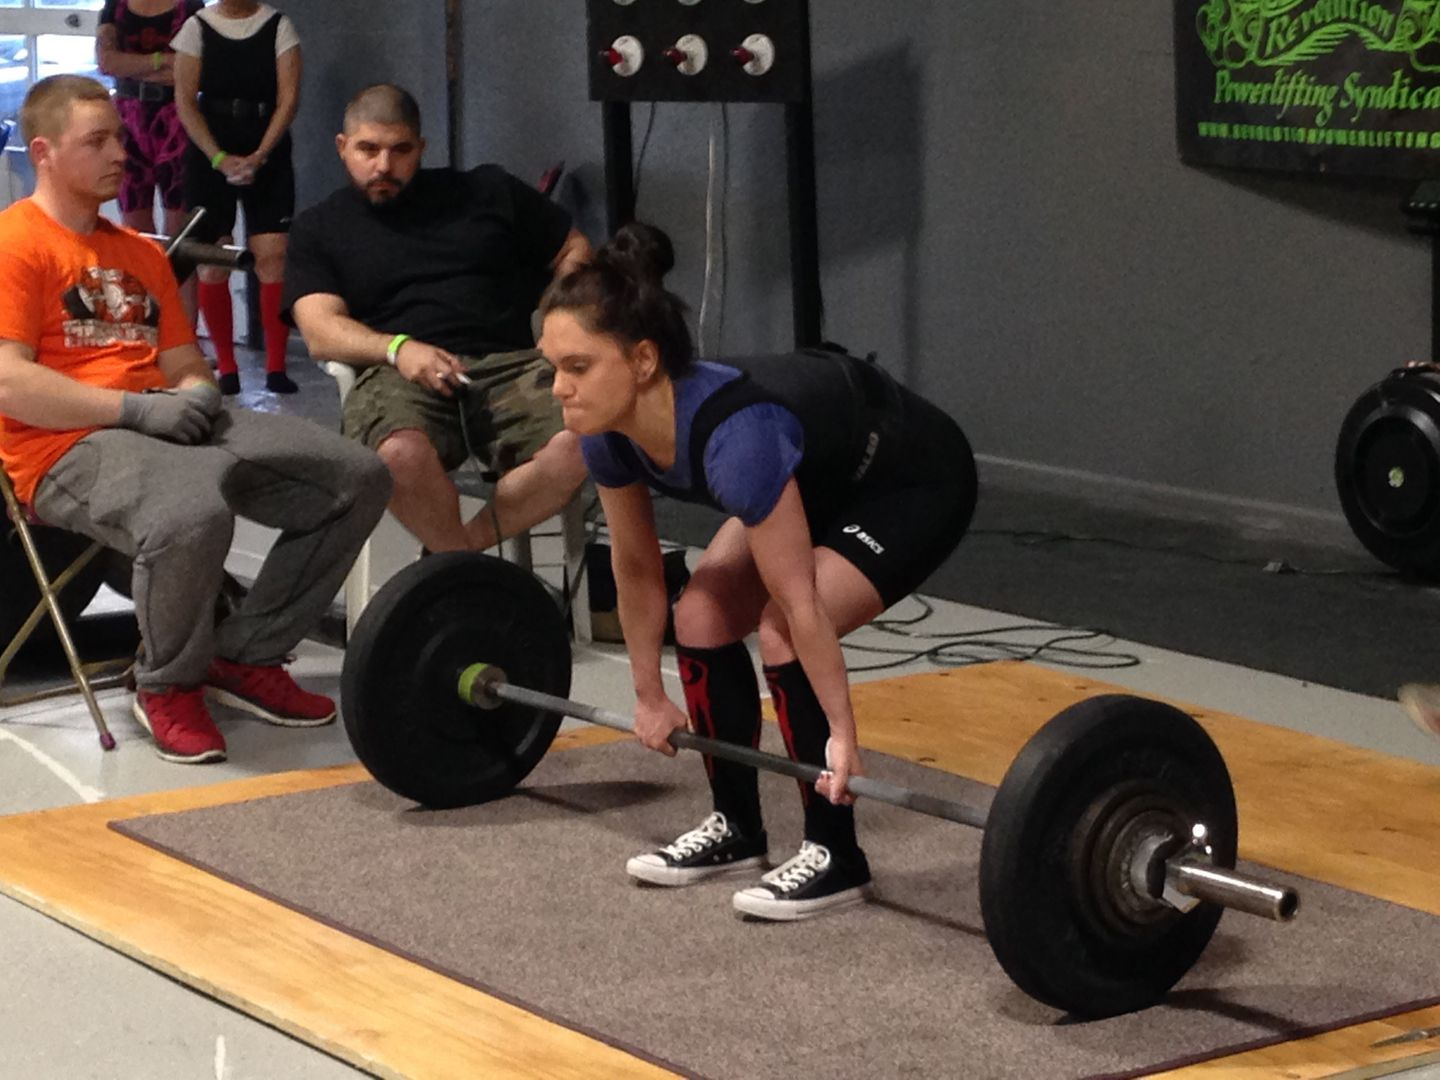 Devoted to fitness, Laura worked out six days a week and competed in organized powerlifting competitions.